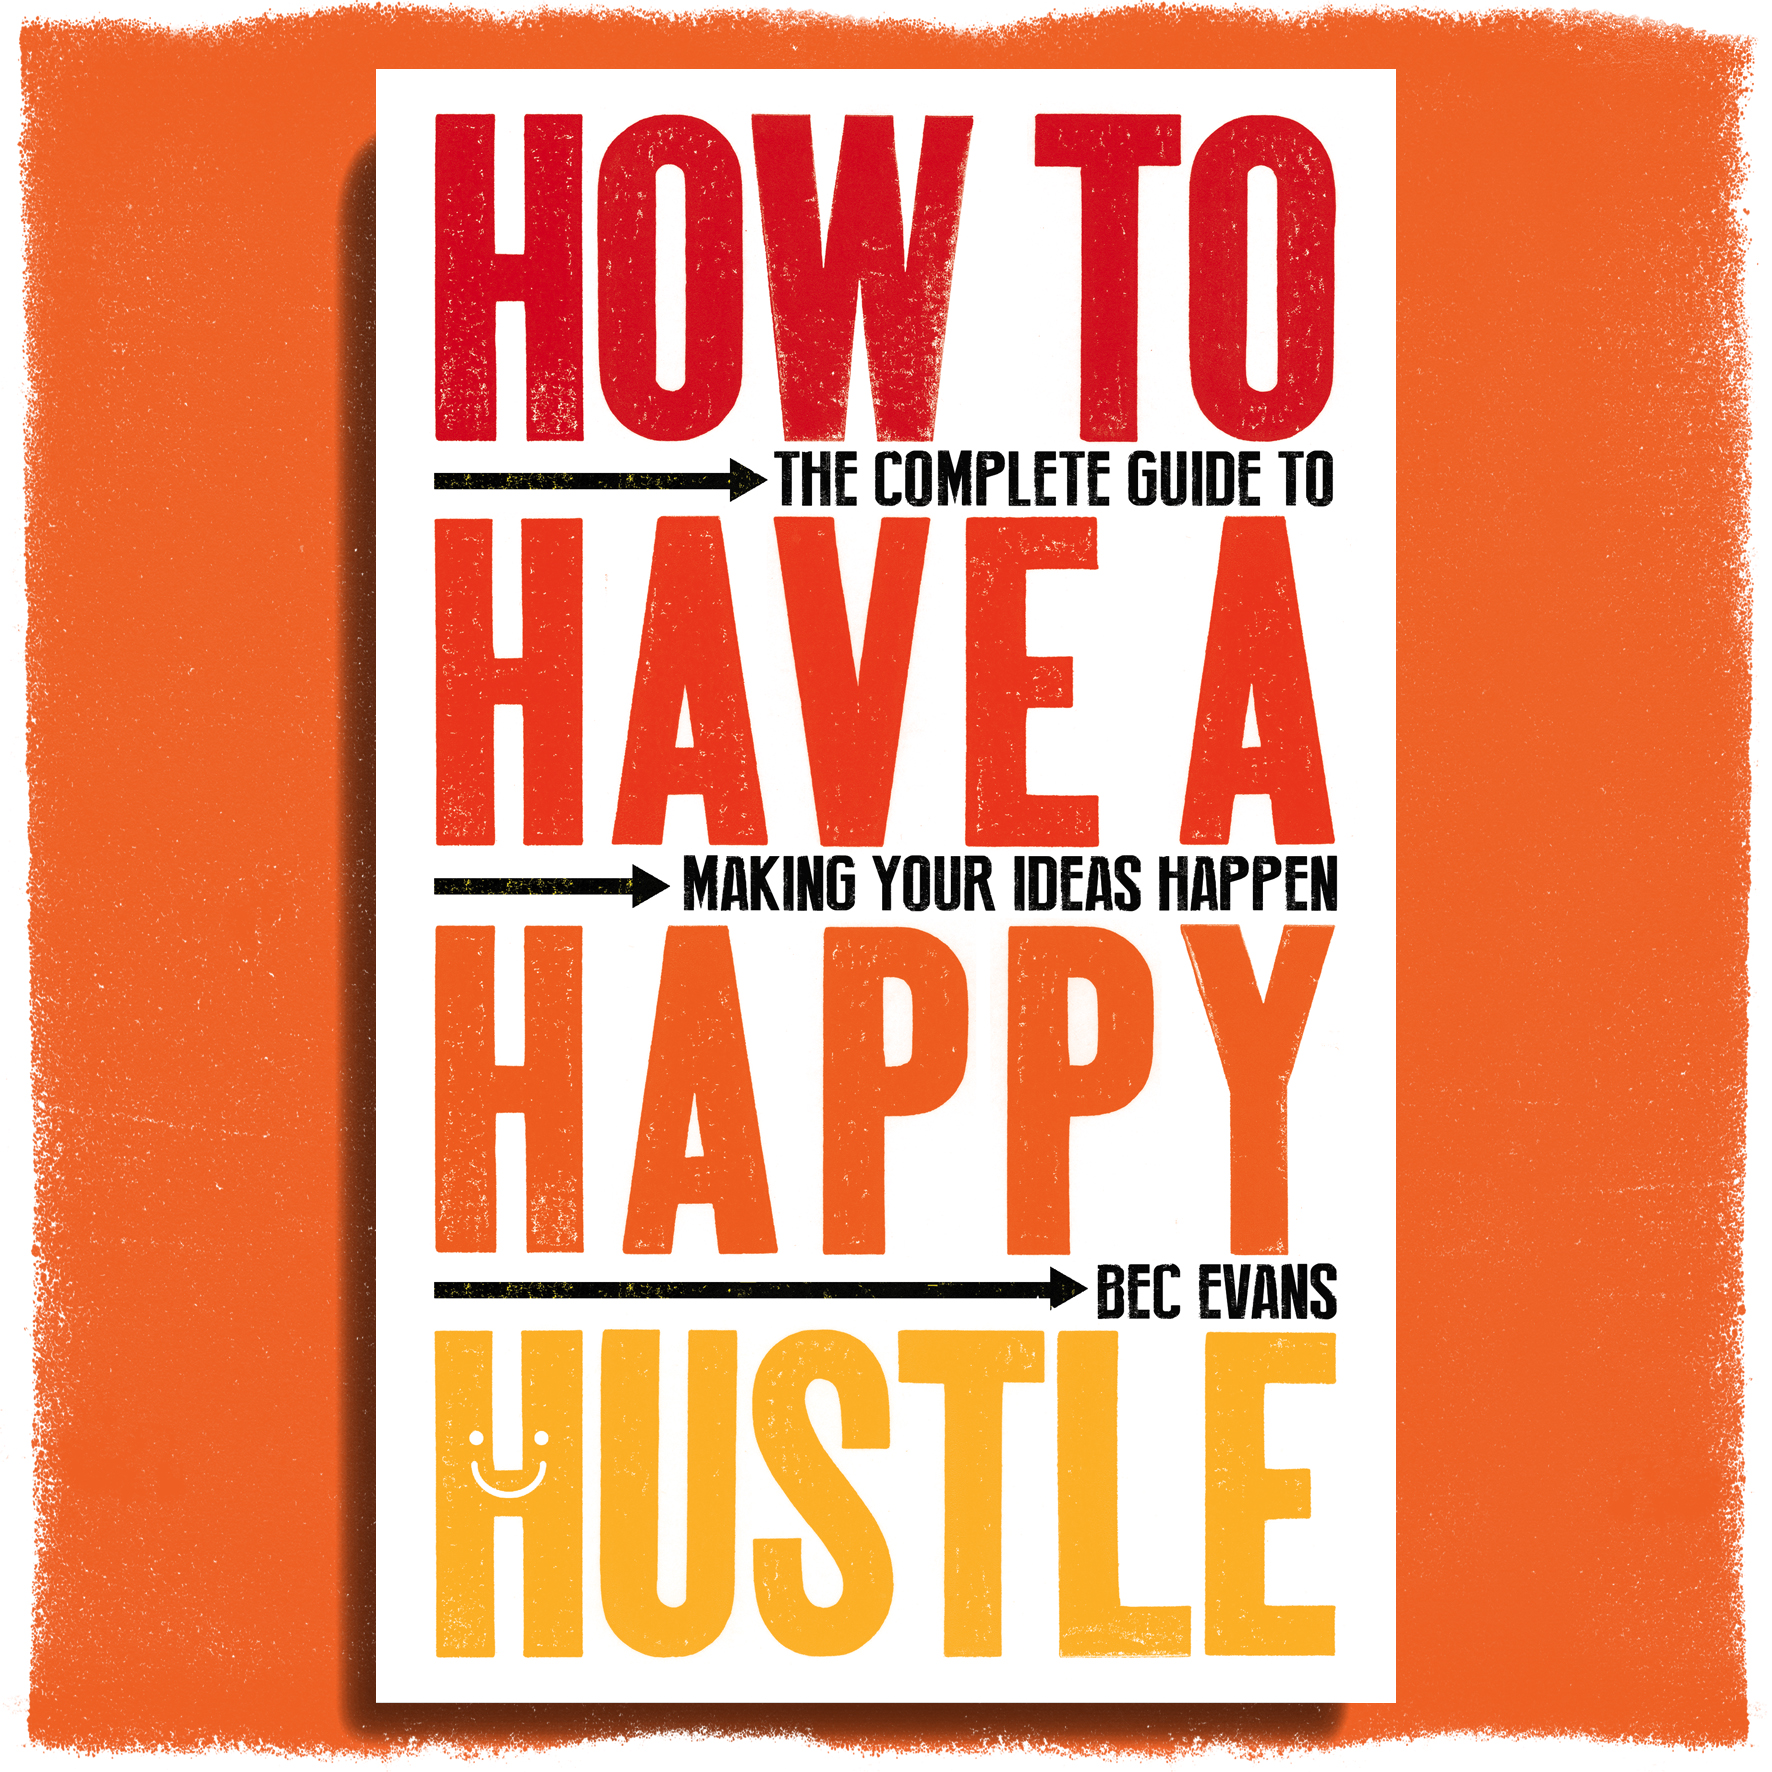 the book - Find out what How to Have a Happy Hustle is all about.